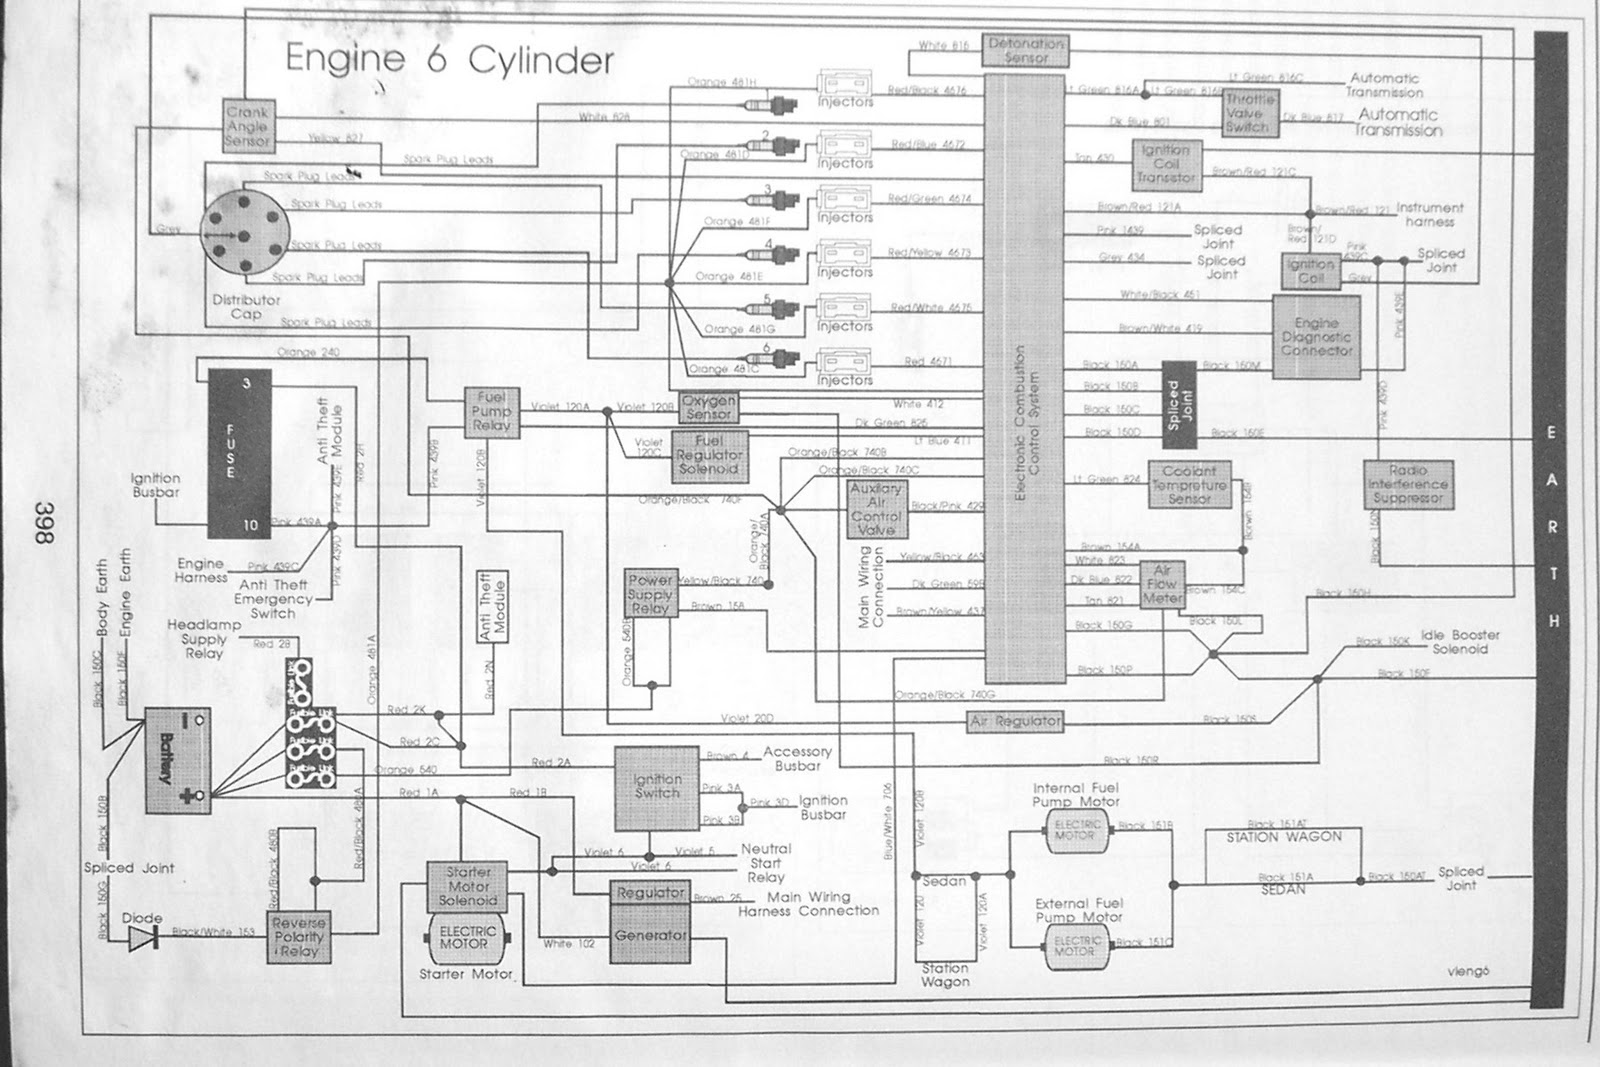 14b rb30 wiring diagrams 280zx project vl commodore engine wiring diagram at panicattacktreatment.co